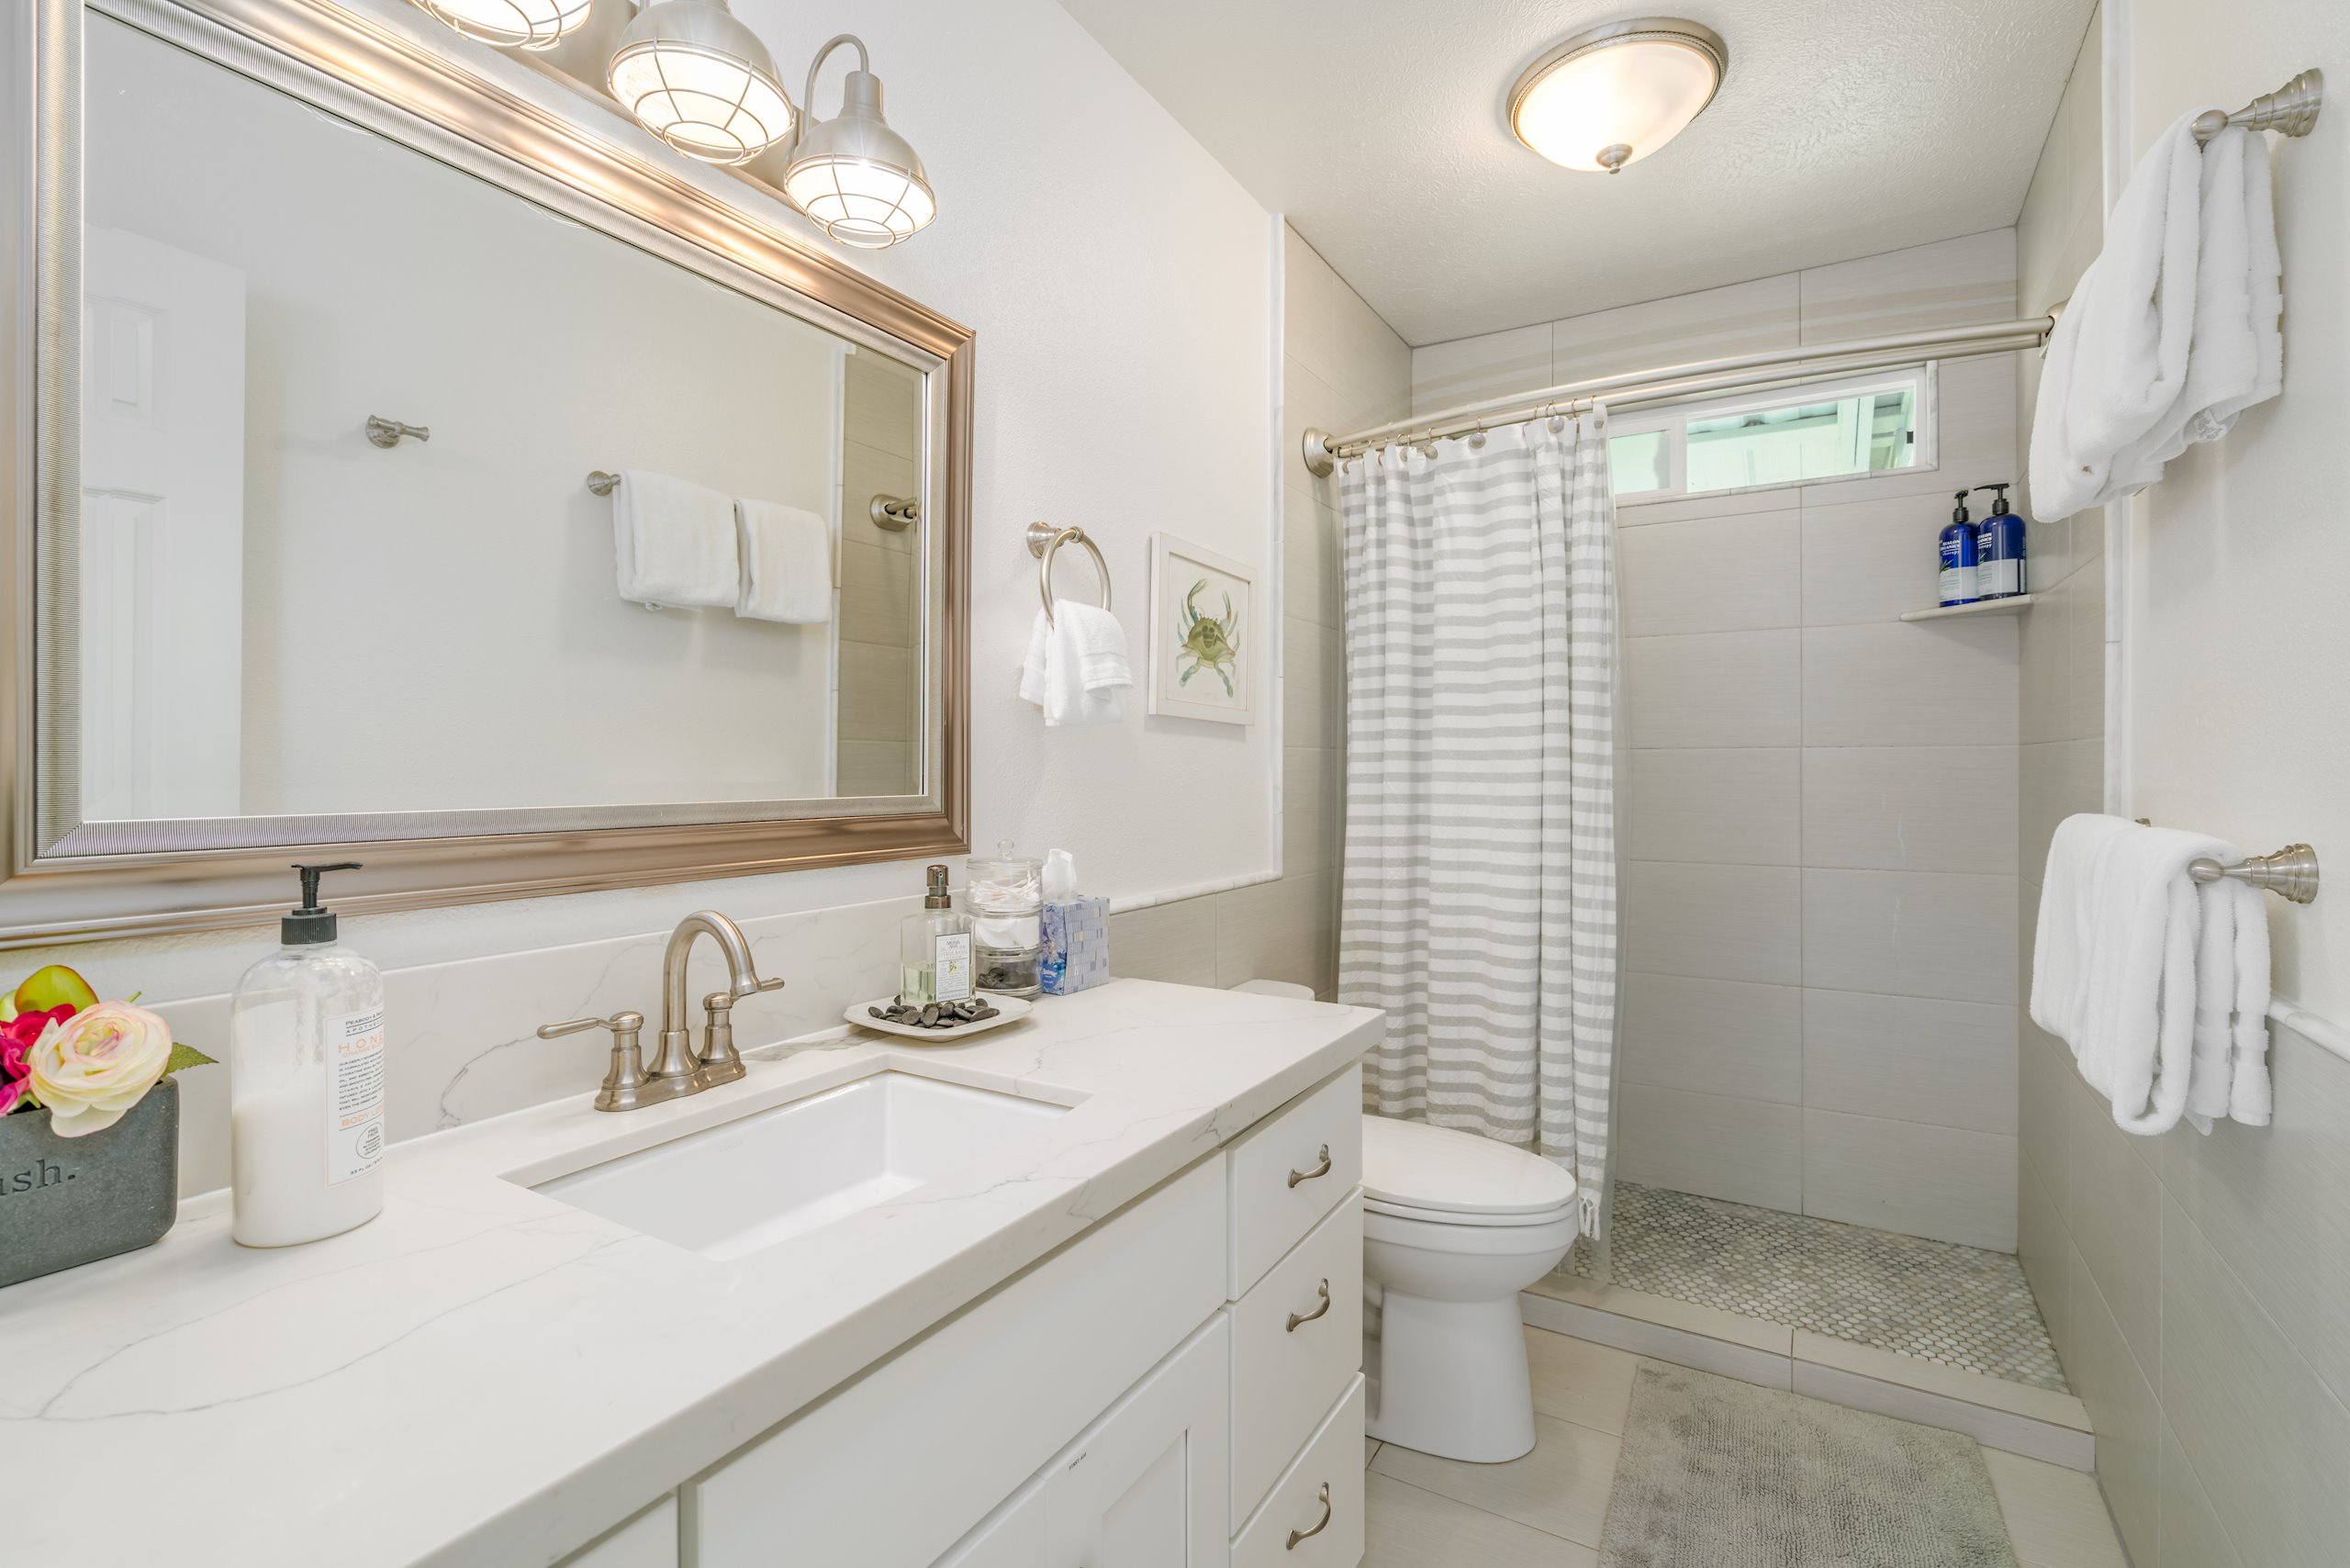 The upstairs guest bathroom with custom tile work, quartz countertops and high-end fixtures